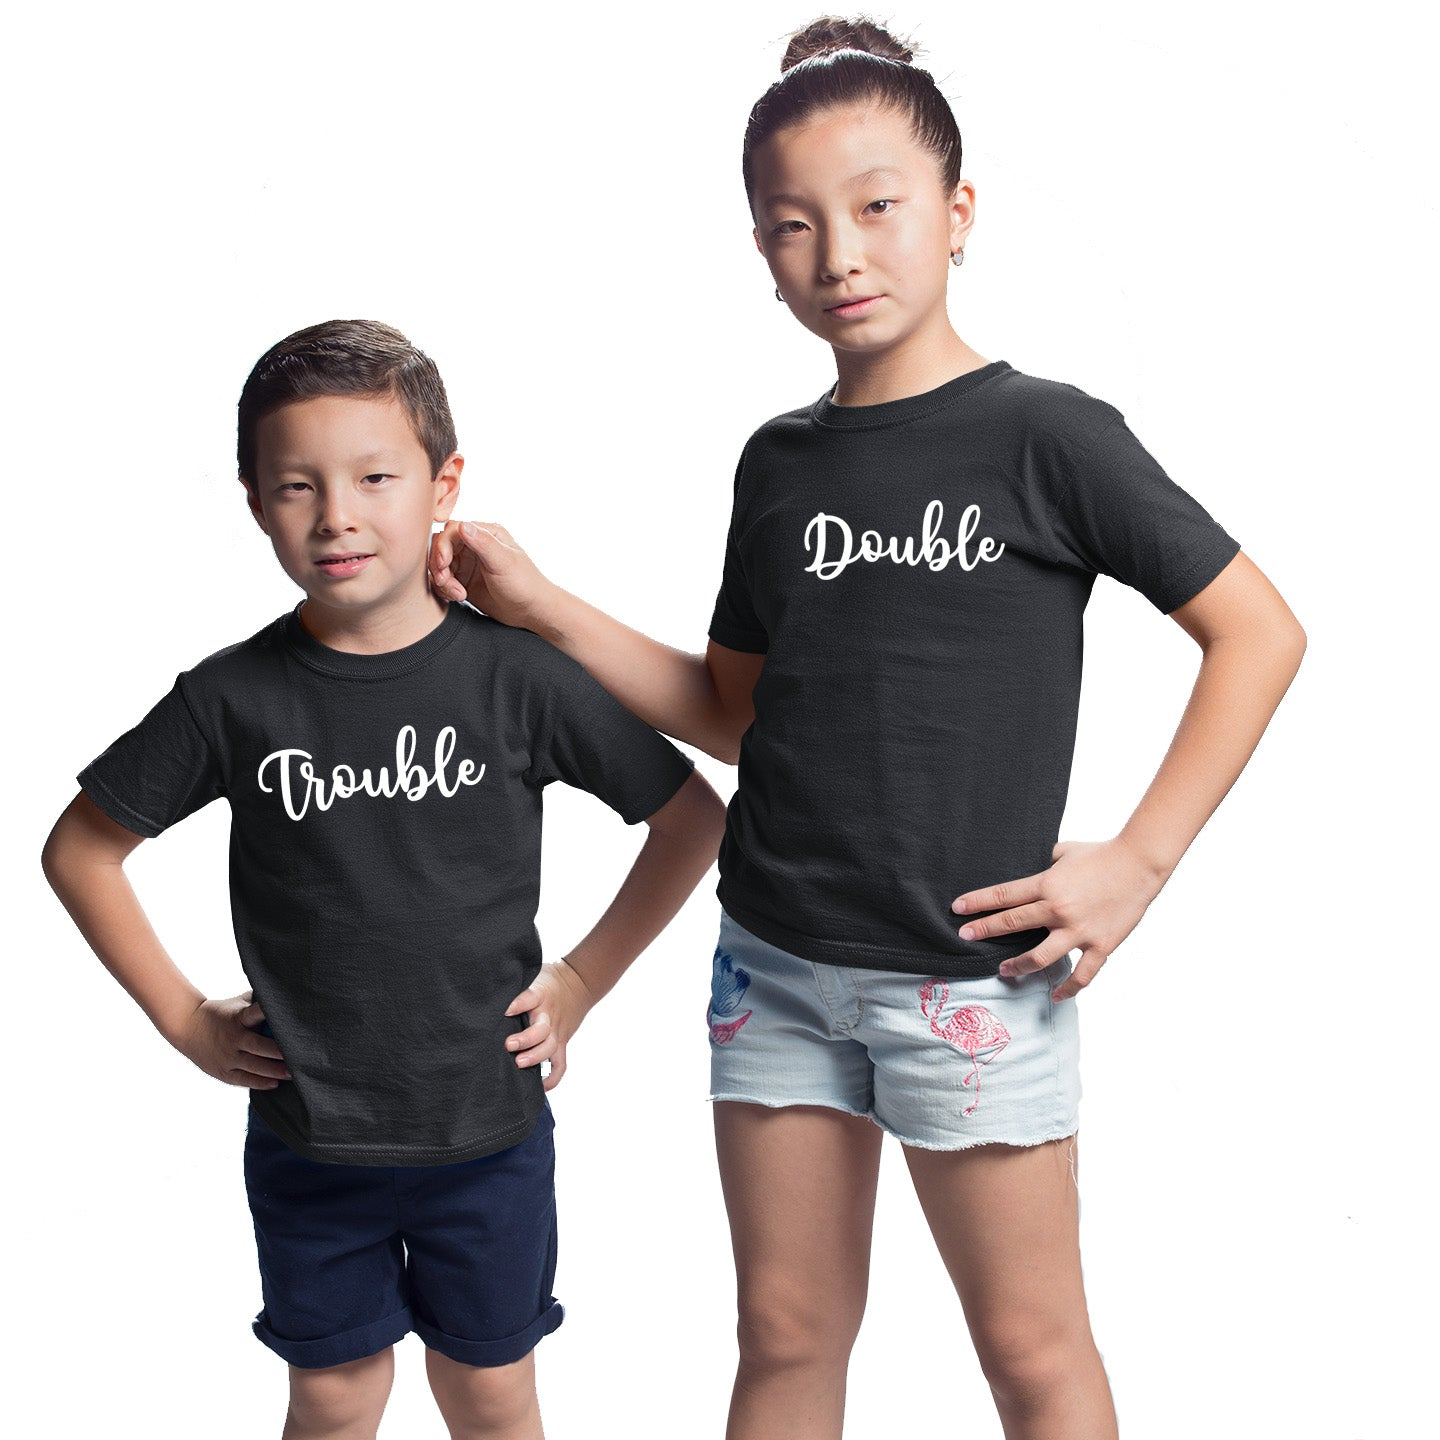 Sprinklecart Double Trouble Matching Cotton Kids T Shirt (Black)